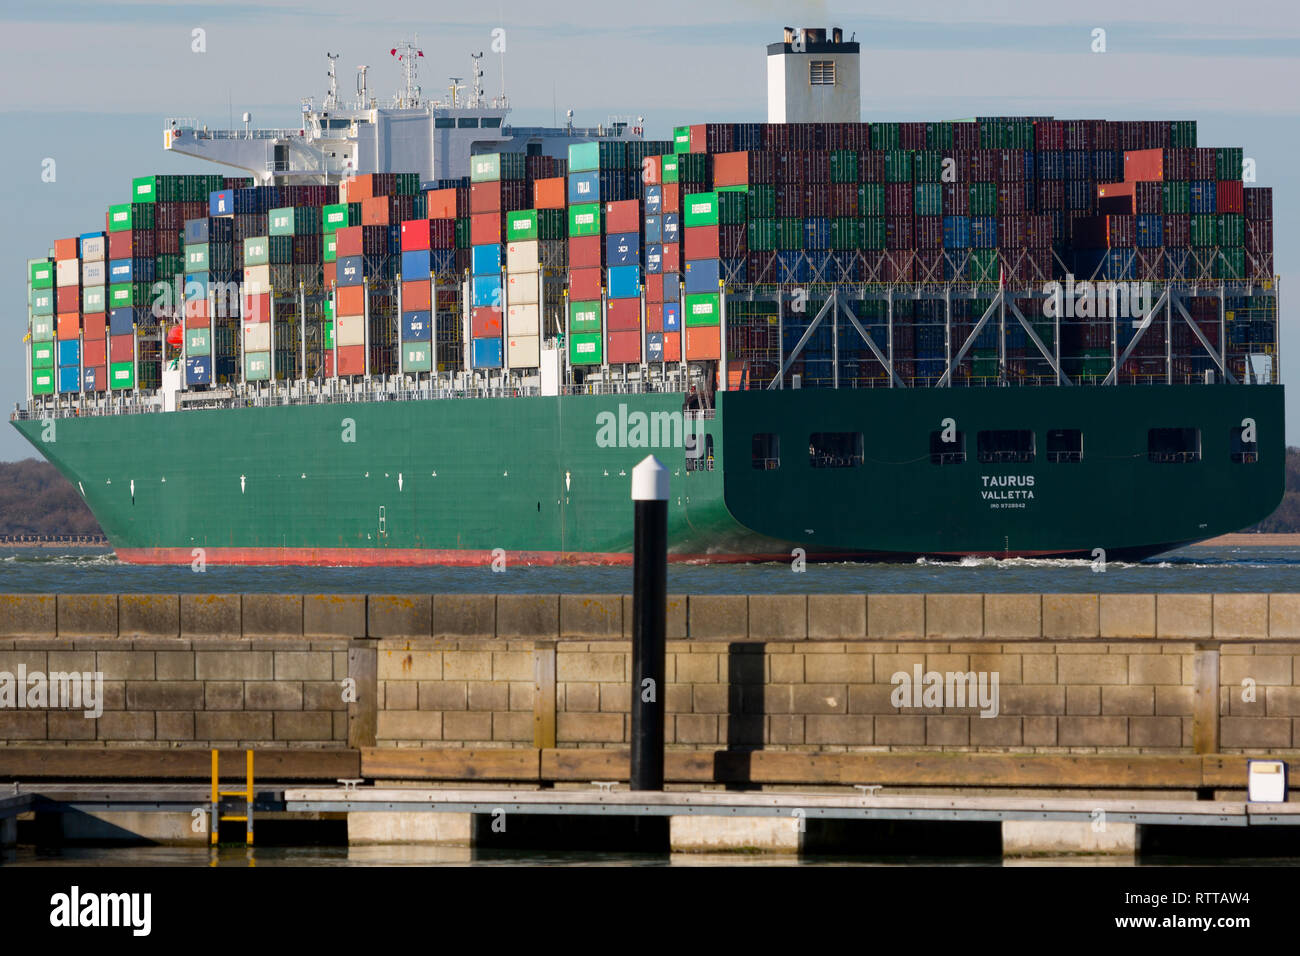 Container Ship, The Solent, Cowes, isle of Wight, Southampton, England, UK, - Stock Image